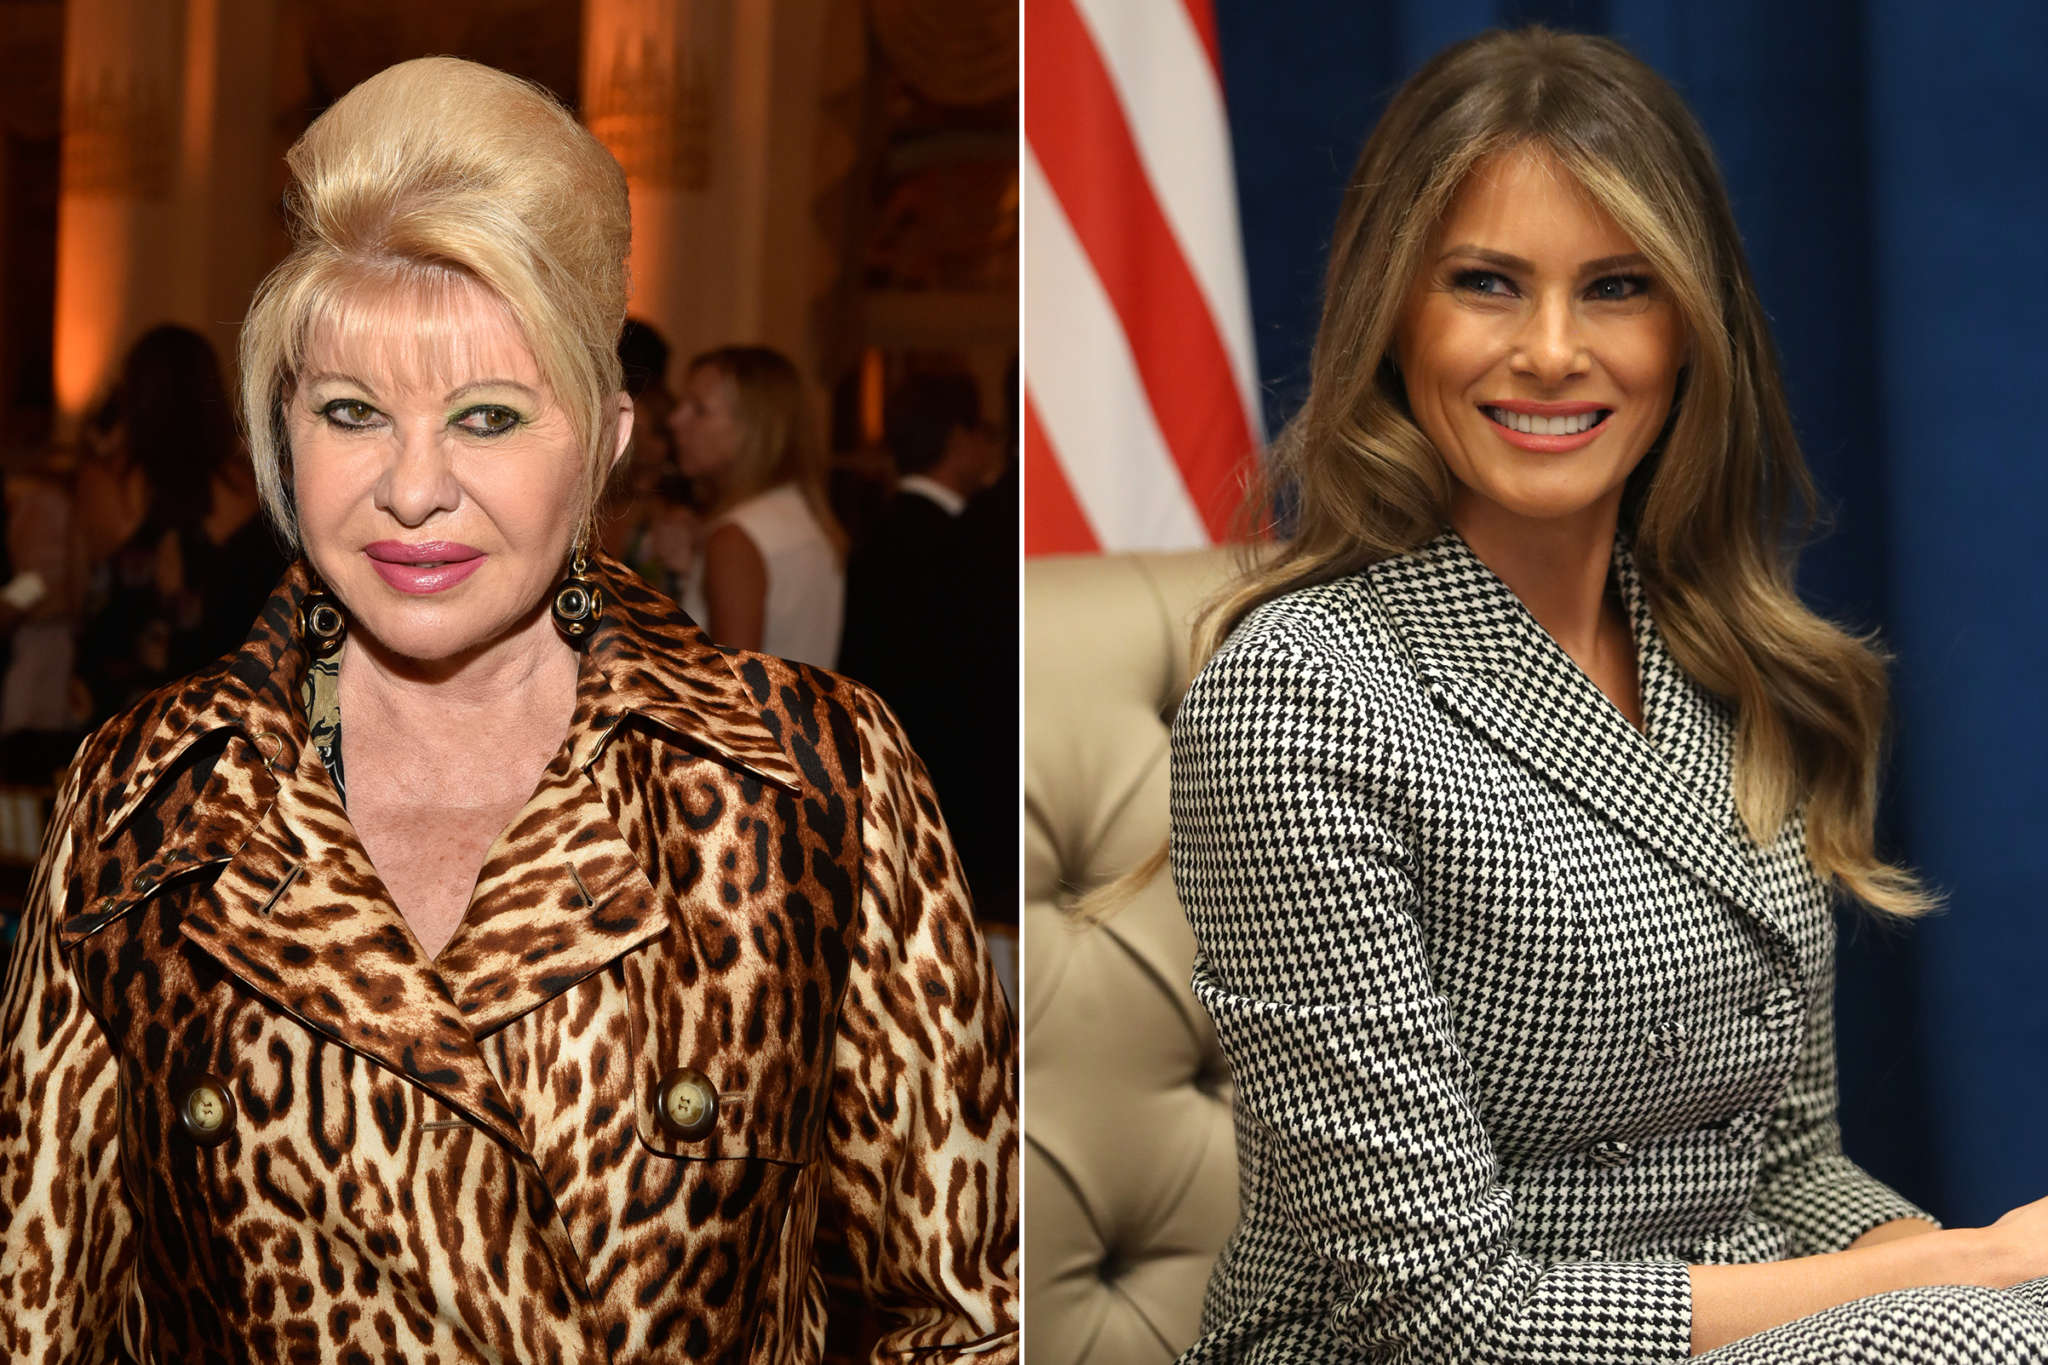 ivana-trump-calls-melania-donalds-ex-wife-during-interview